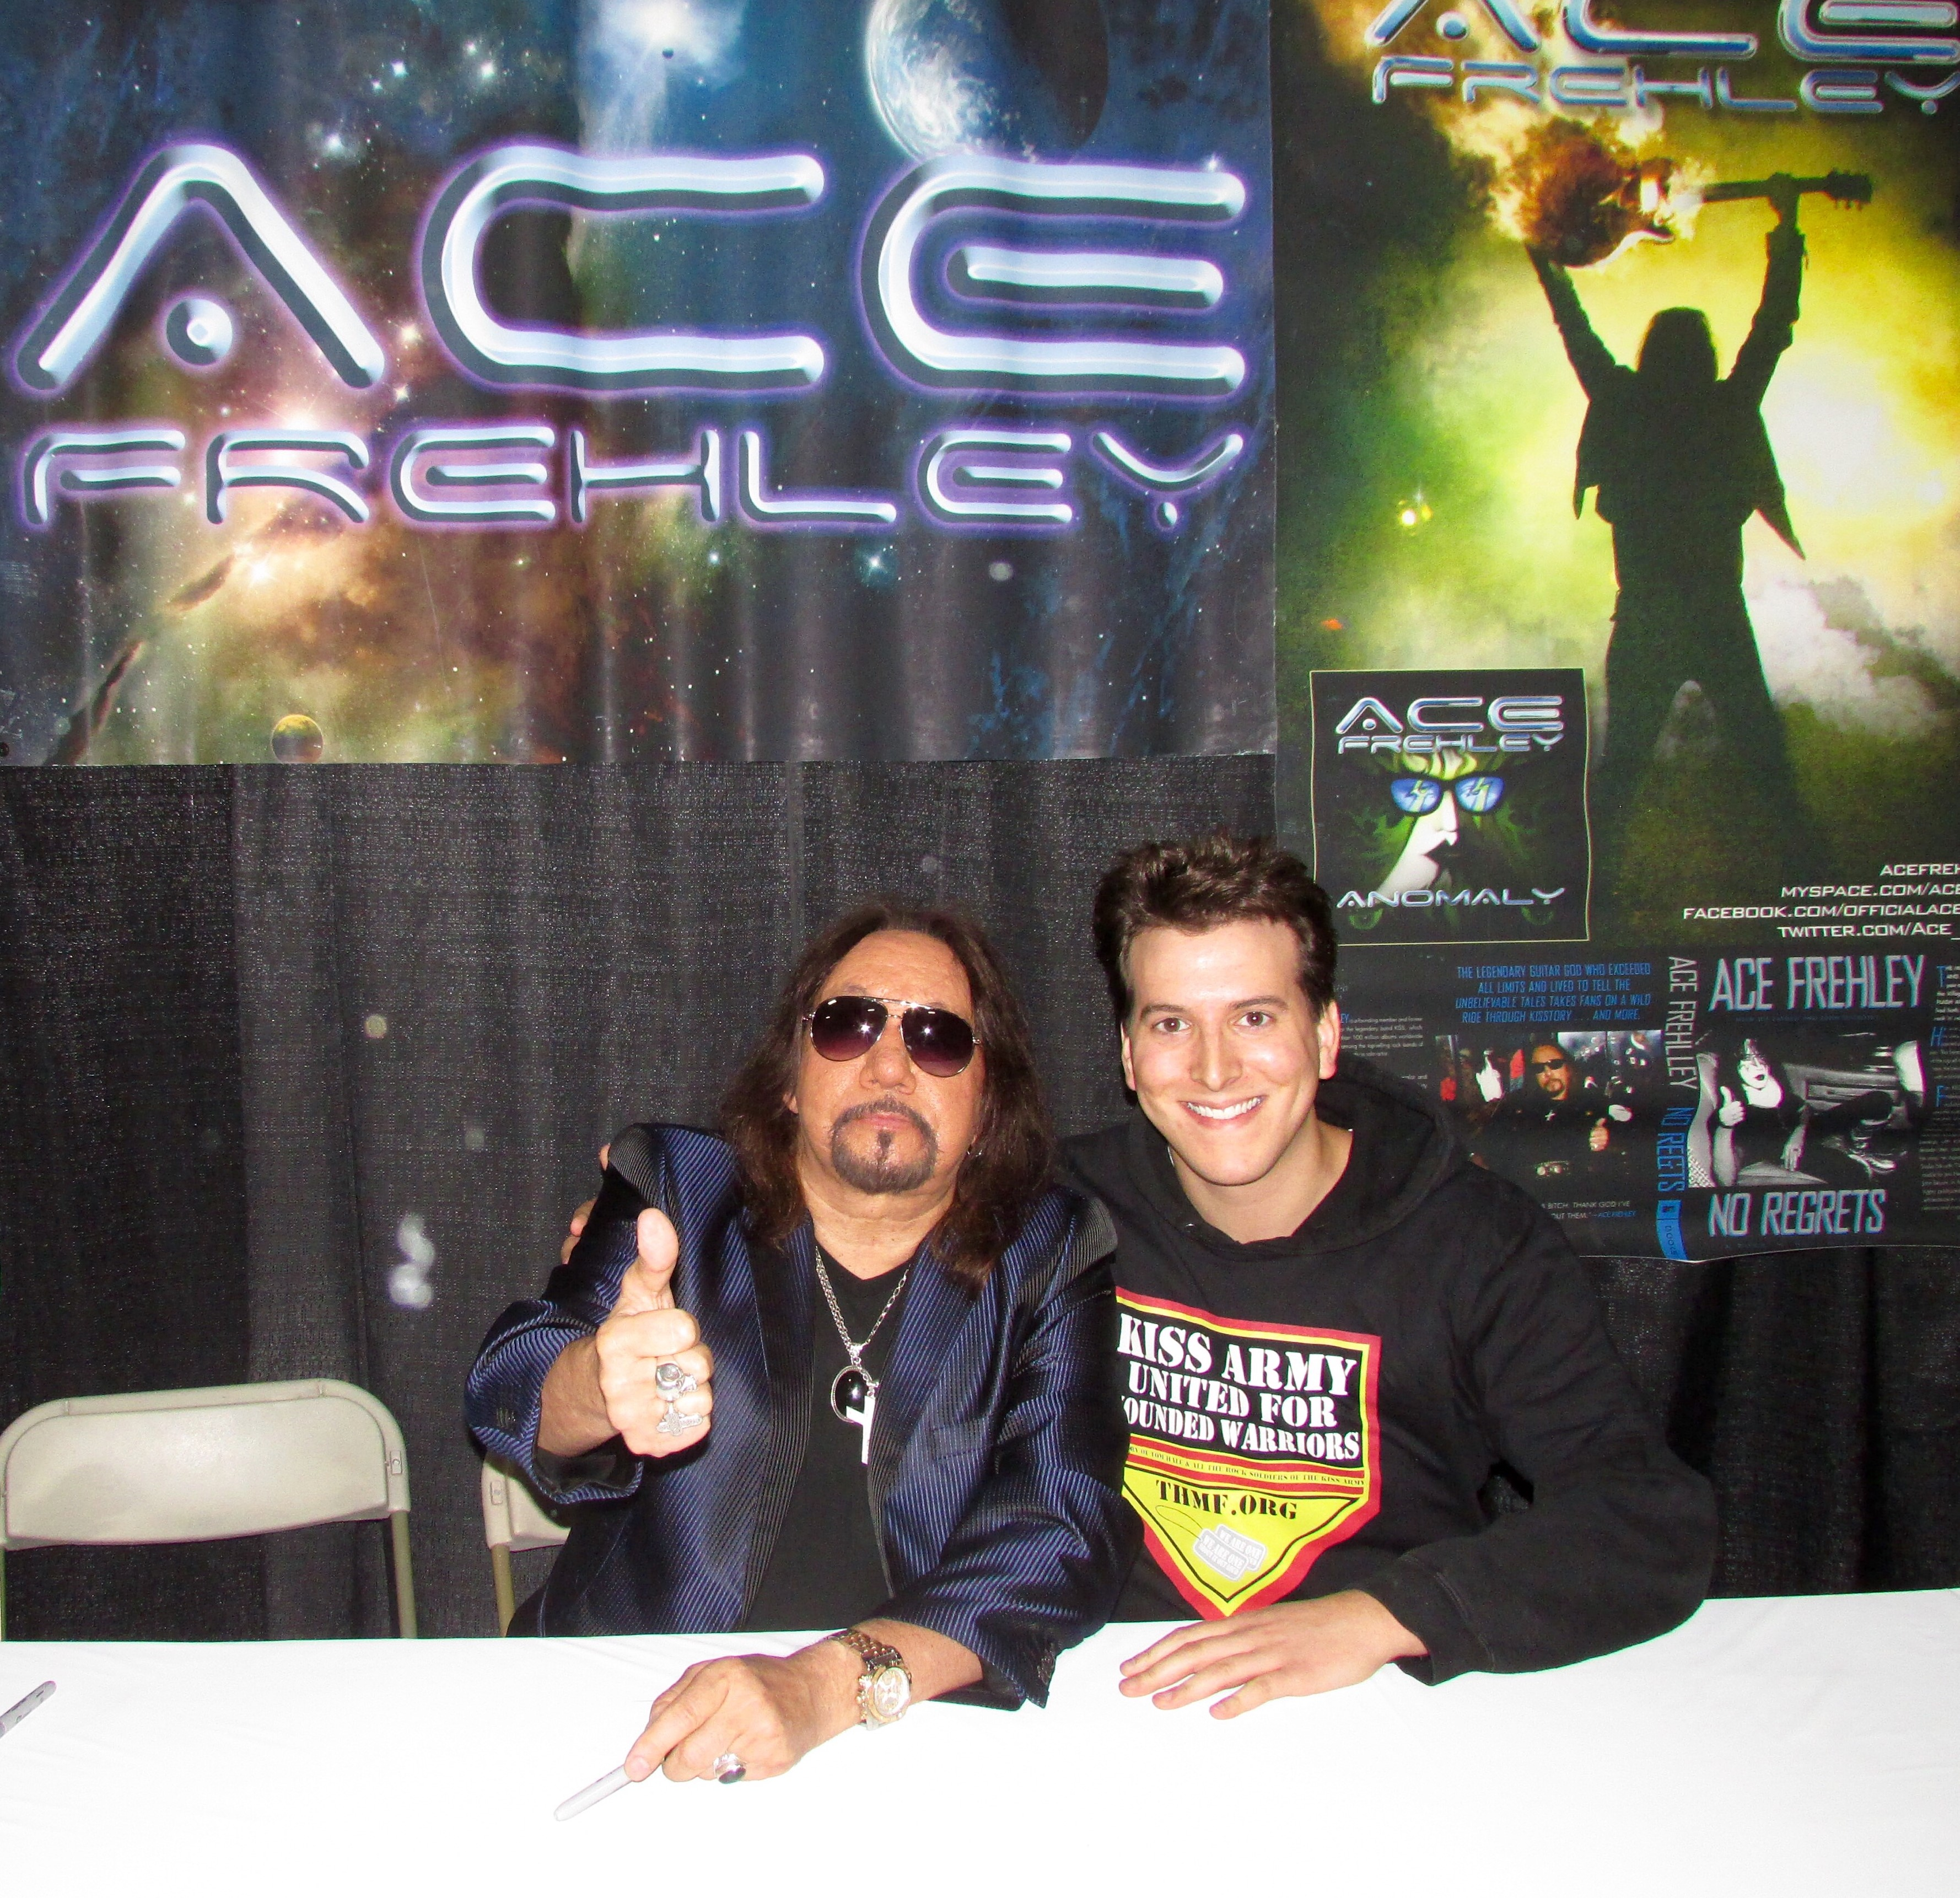 Ace frehley michael cavacini page 2 ace frehley invades pa kristyandbryce Gallery